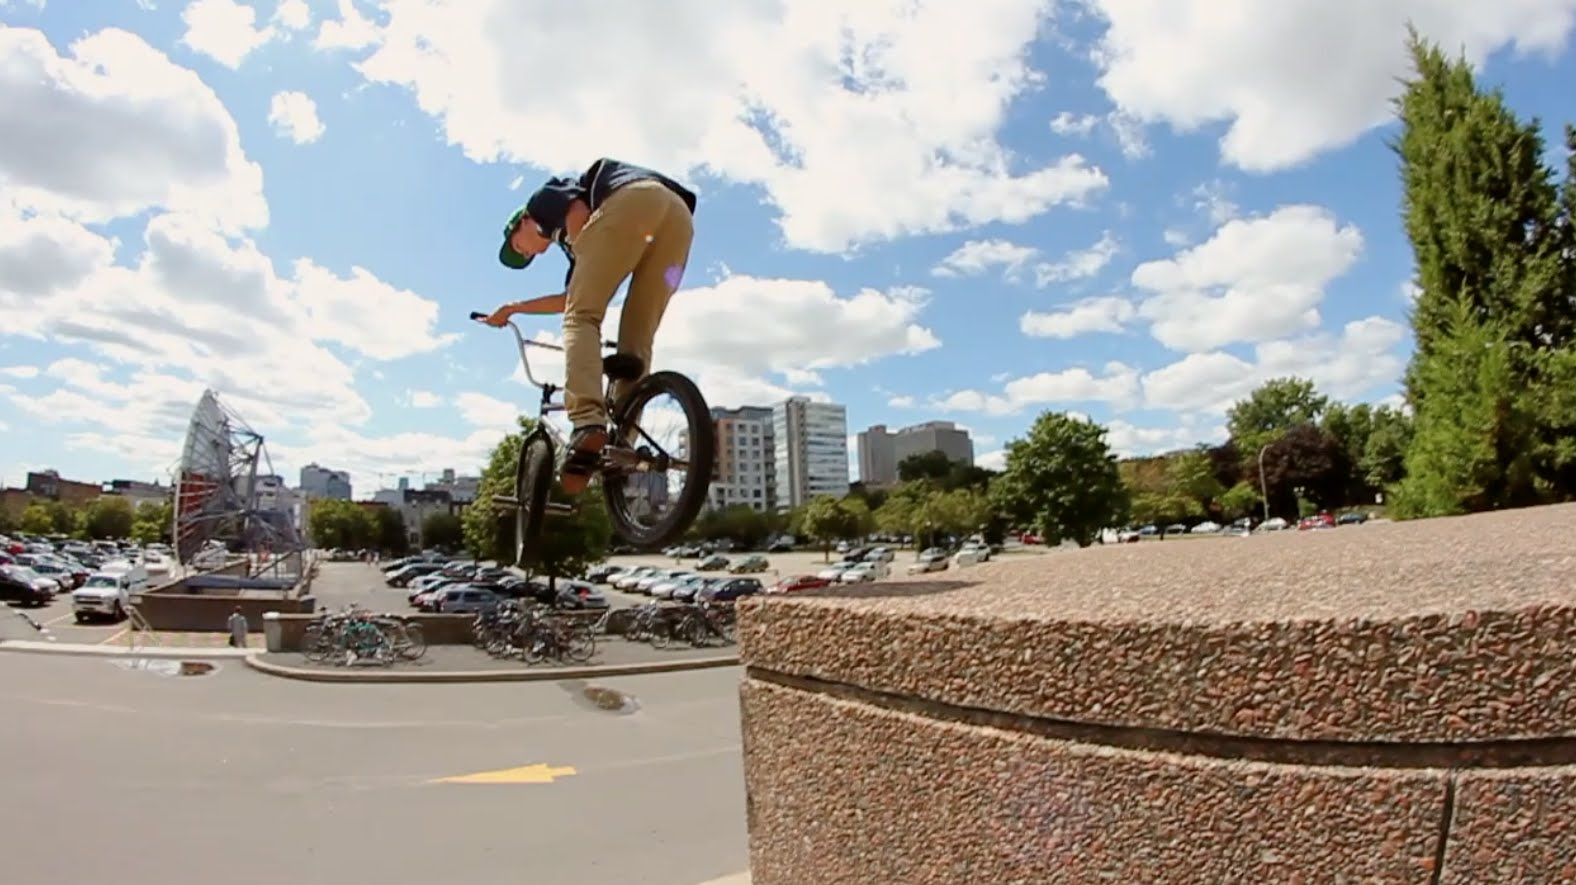 Justin Hughes – Welcome to WTP